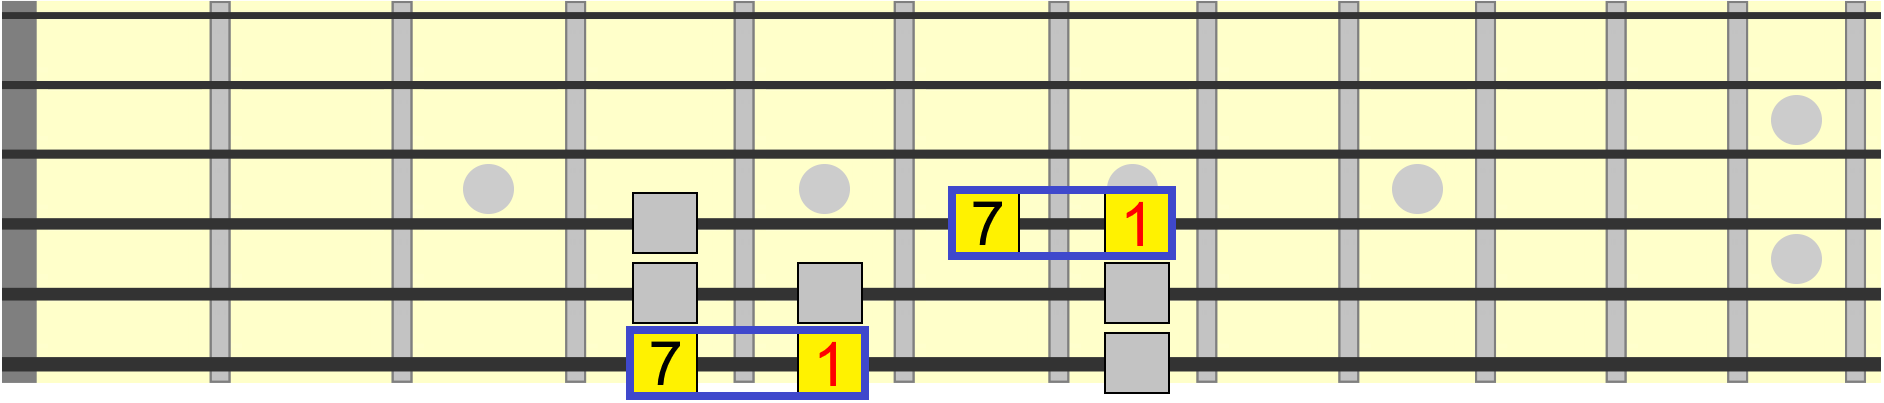 major 7th interval as one semitone down from the root